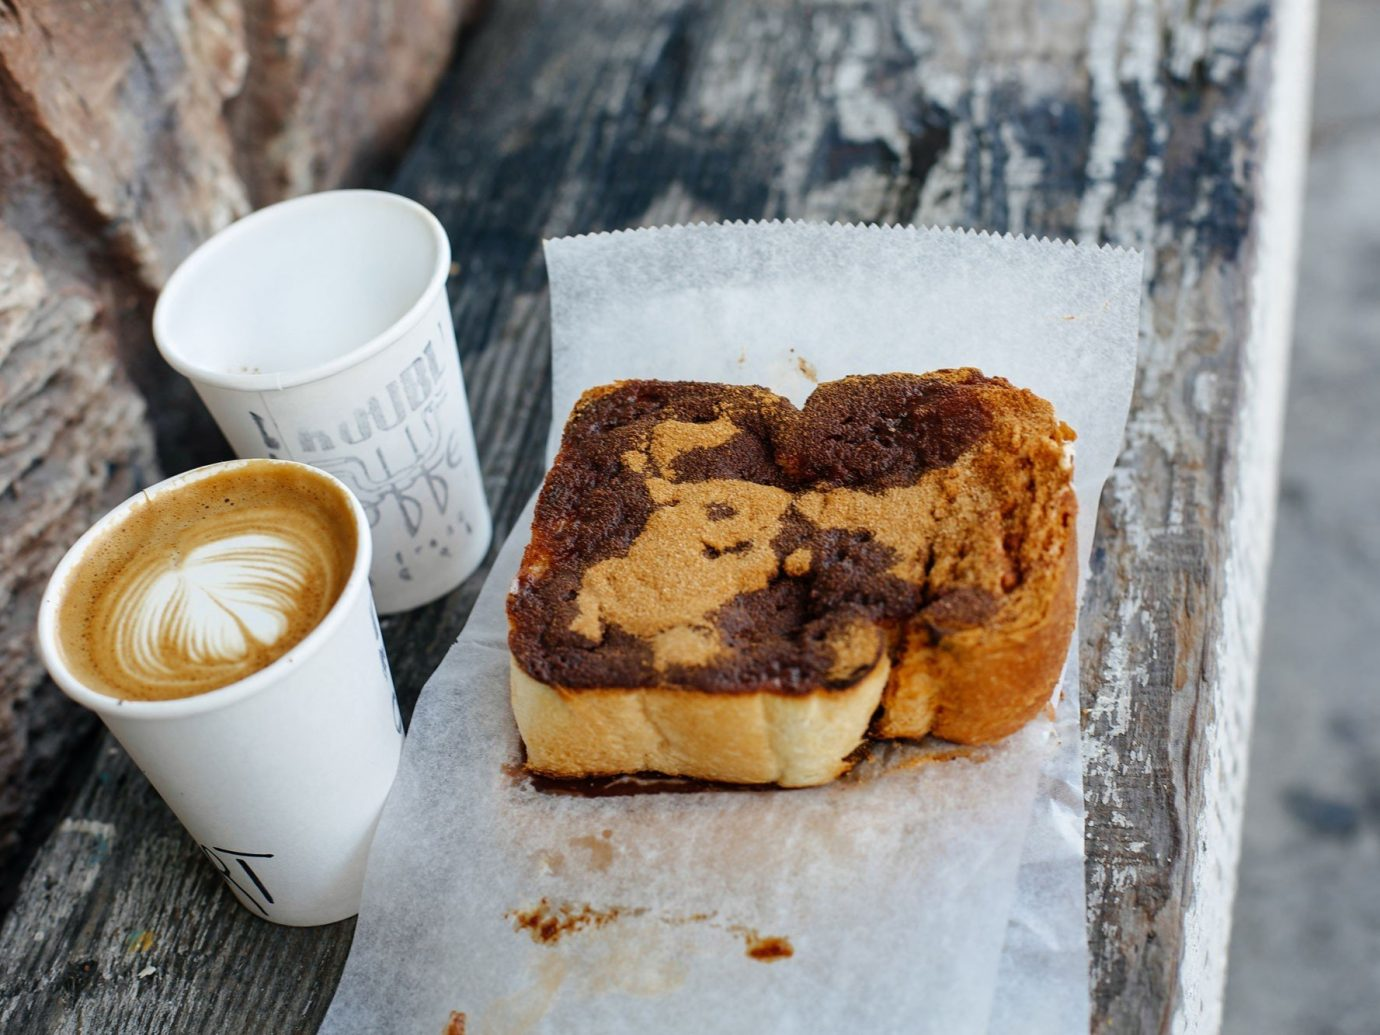 Food + Drink cup coffee ground food outdoor piece breakfast meal dish dessert chocolate baking pastry coconut snack food baked goods chocolate brownie flavor produce sweetness